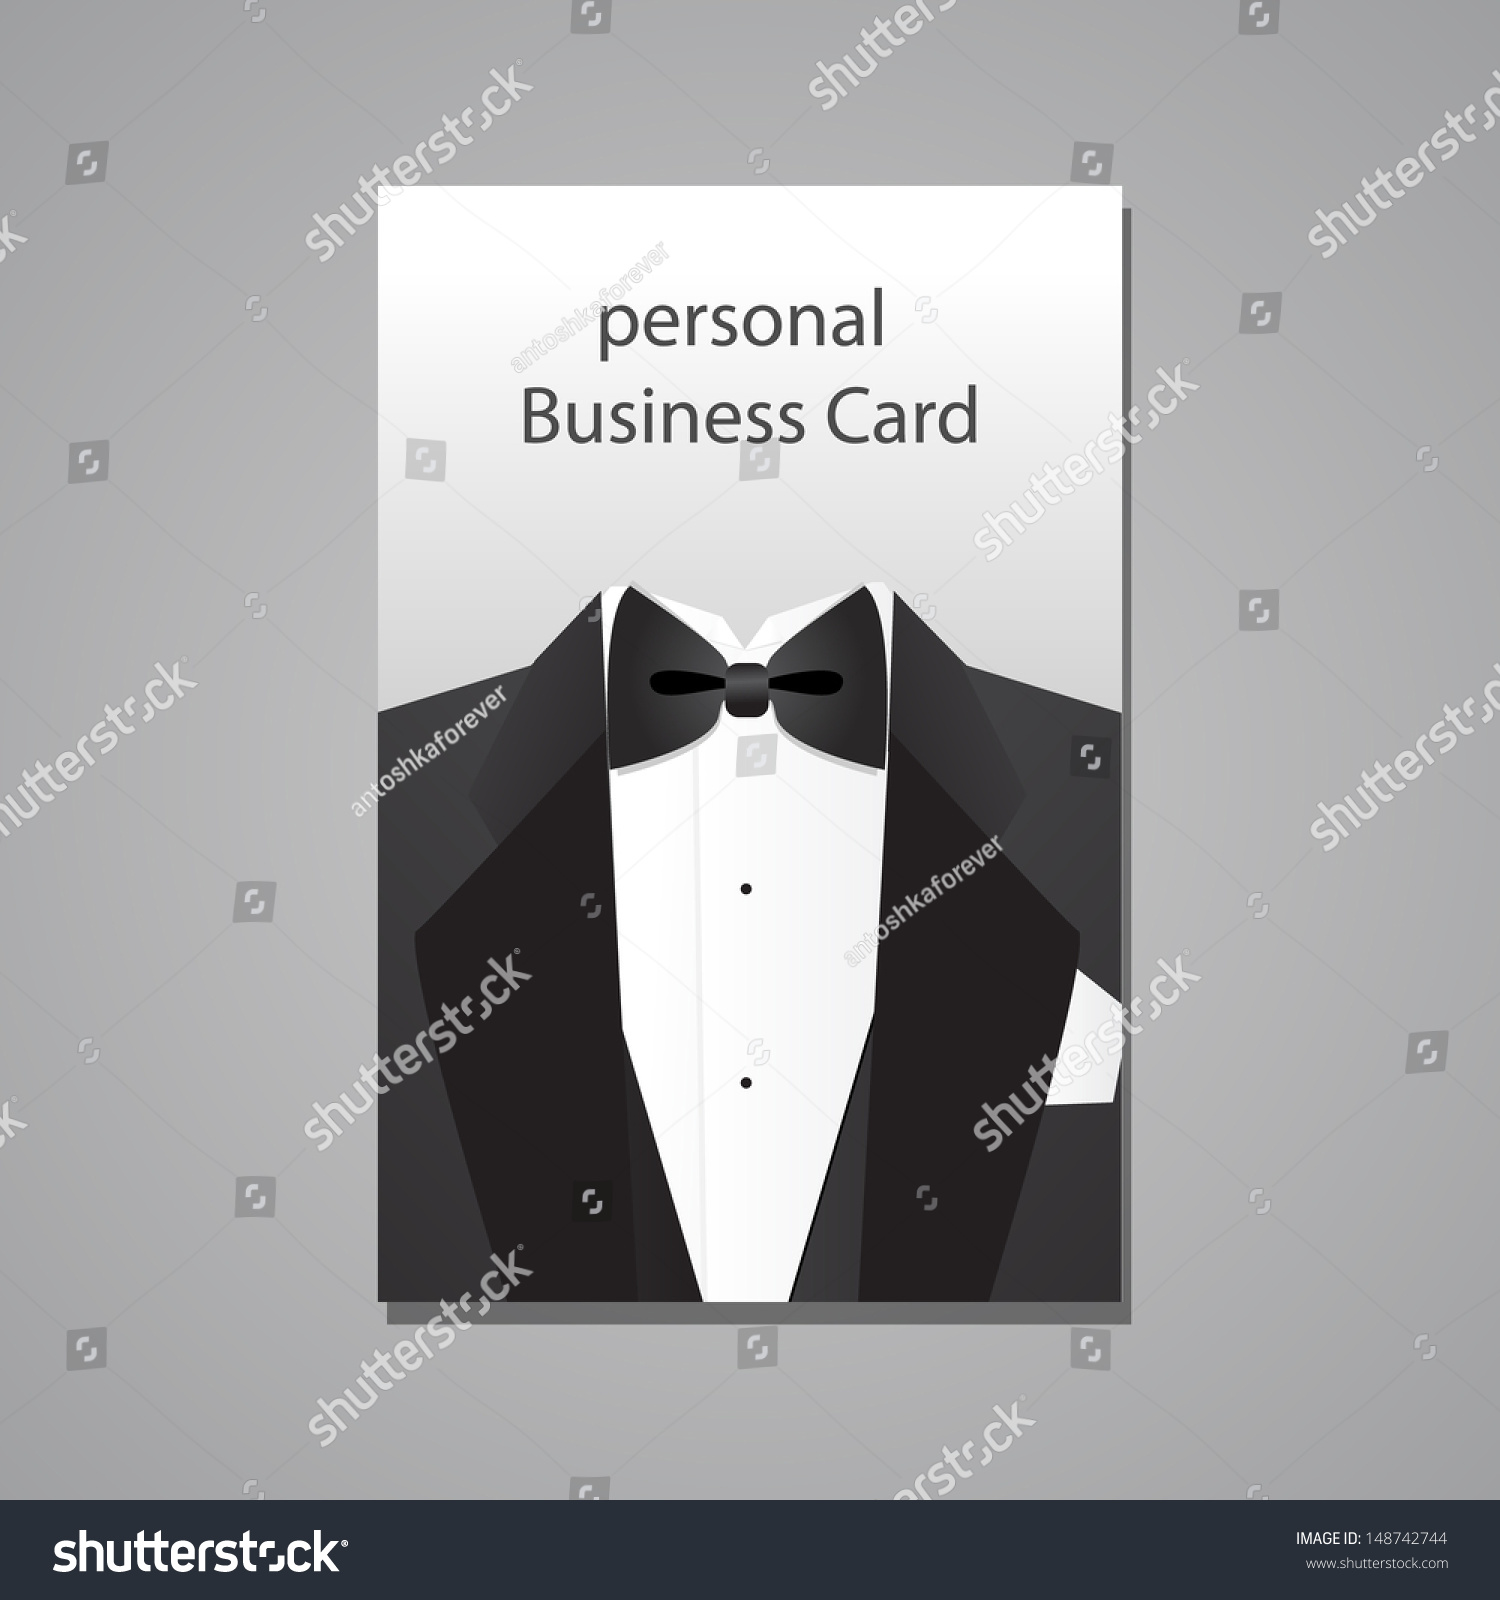 Personal Business Card Design Template Stock Vector 148742744 ...